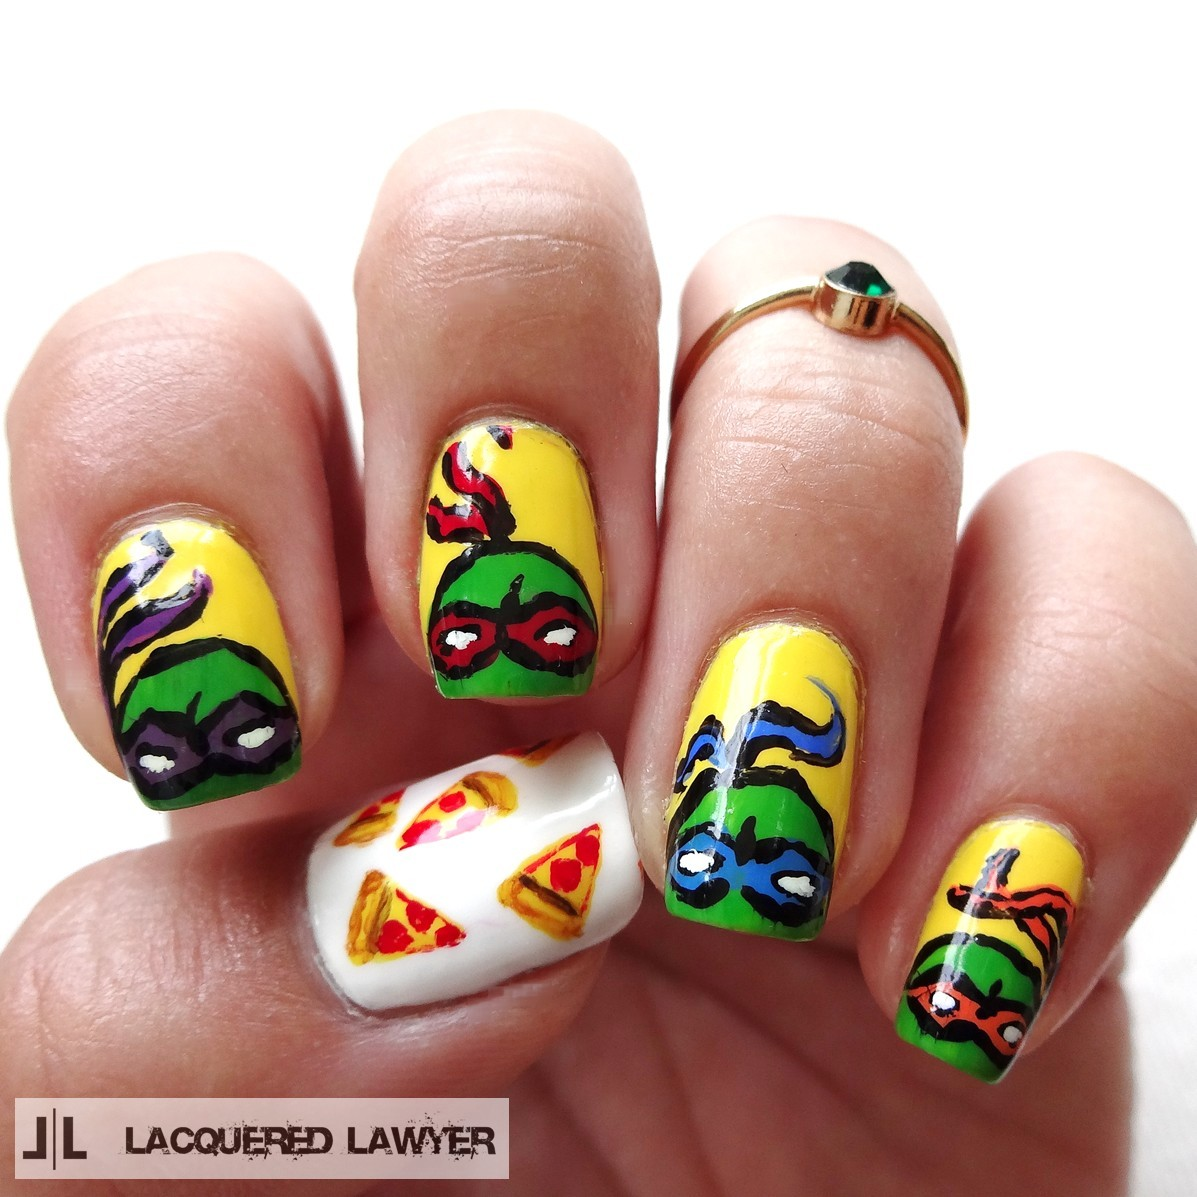 Teenage Mutant Ninja Turtle Nail Art - Lacquered Lawyer Nail Art Blog: Heroes In A Half Shell